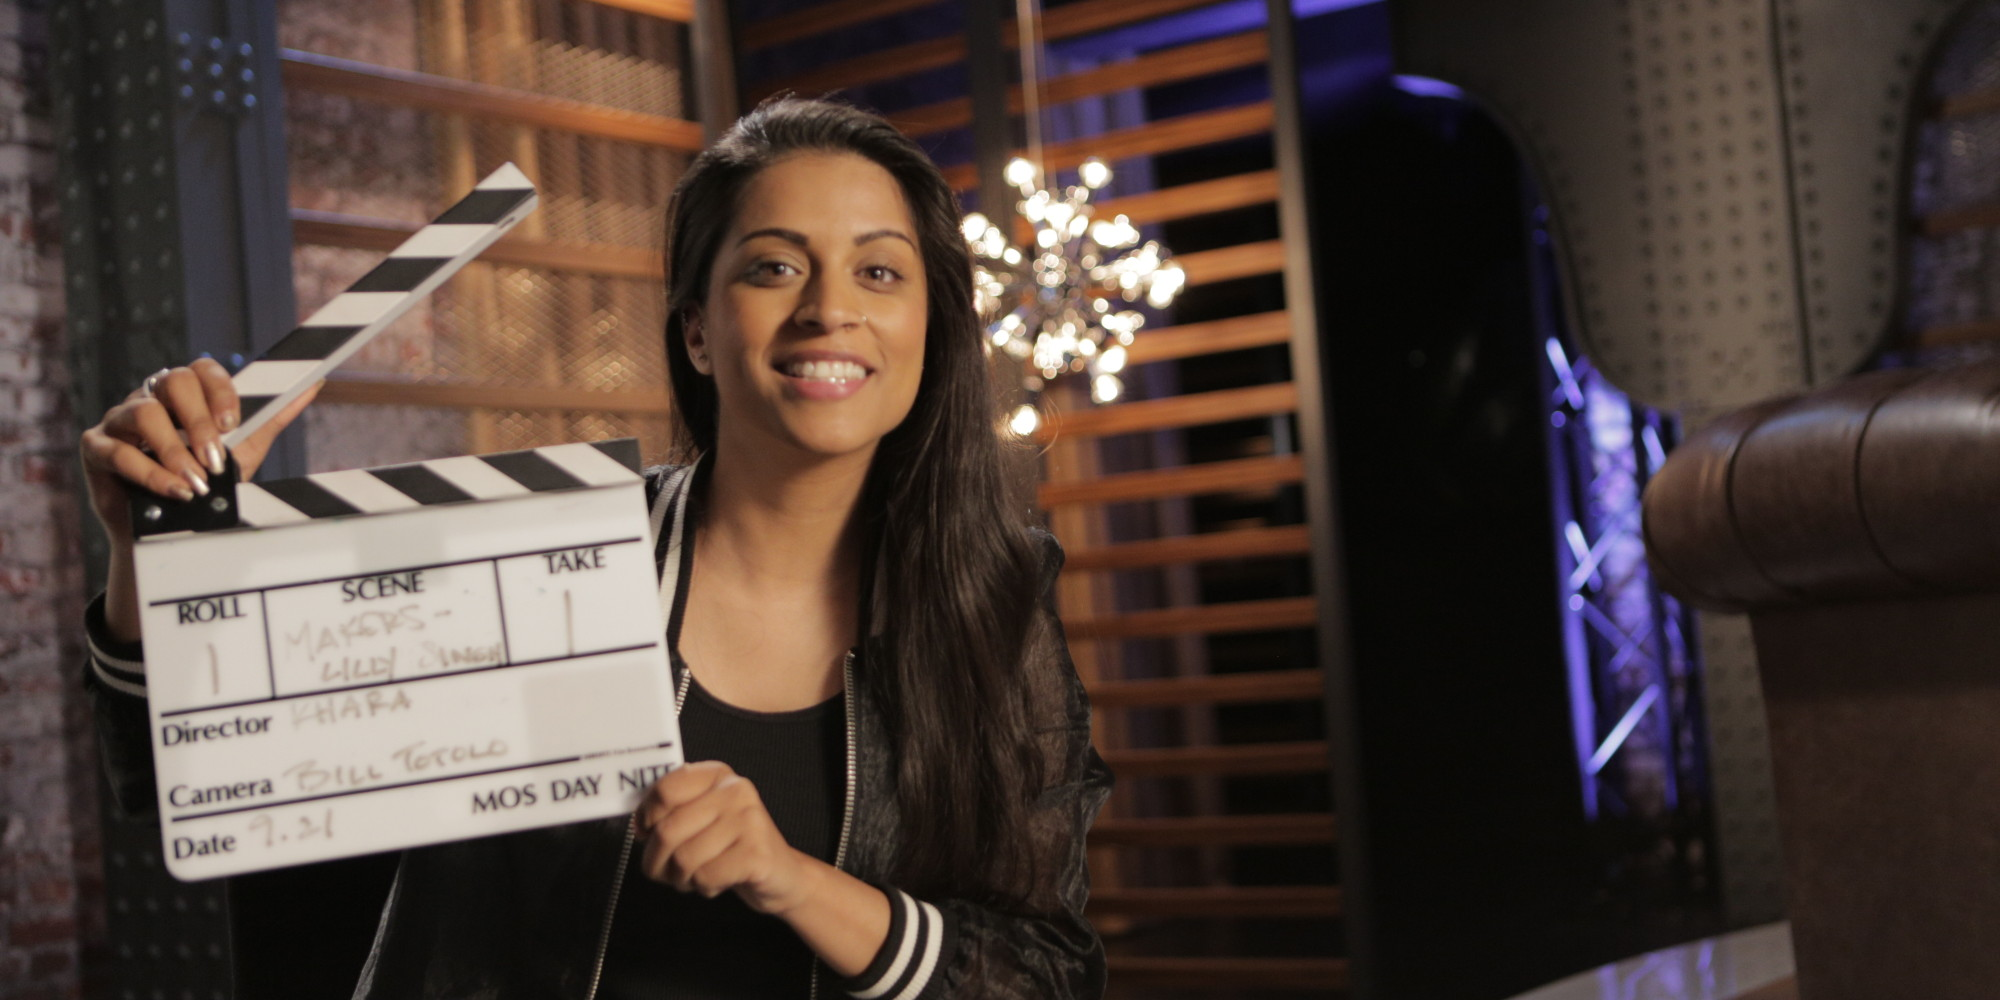 Lilly Singh Facebook: Superwoman, Lilly Singh, Shares Her Story On MAKERS